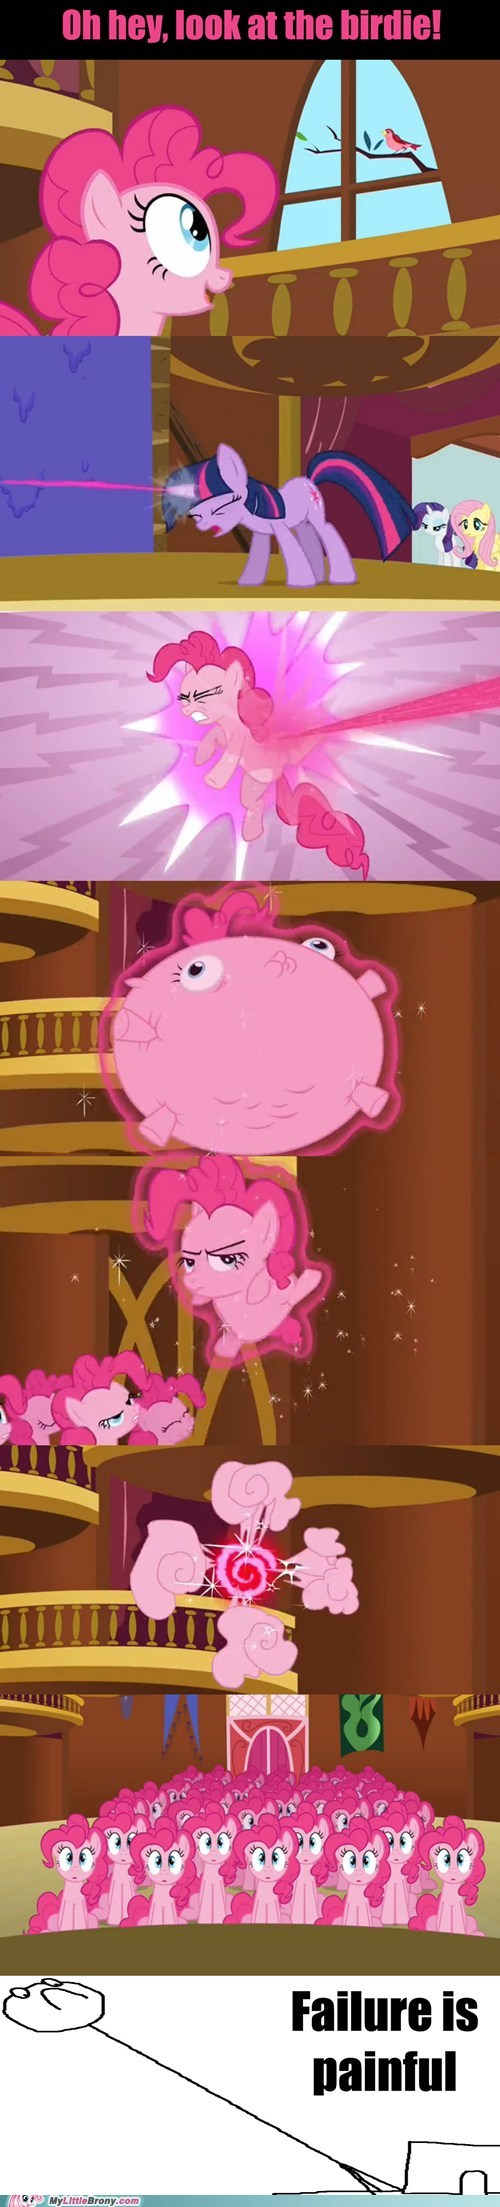 paint dry,failure,pinkie pie,painful,watch the wall,remedy